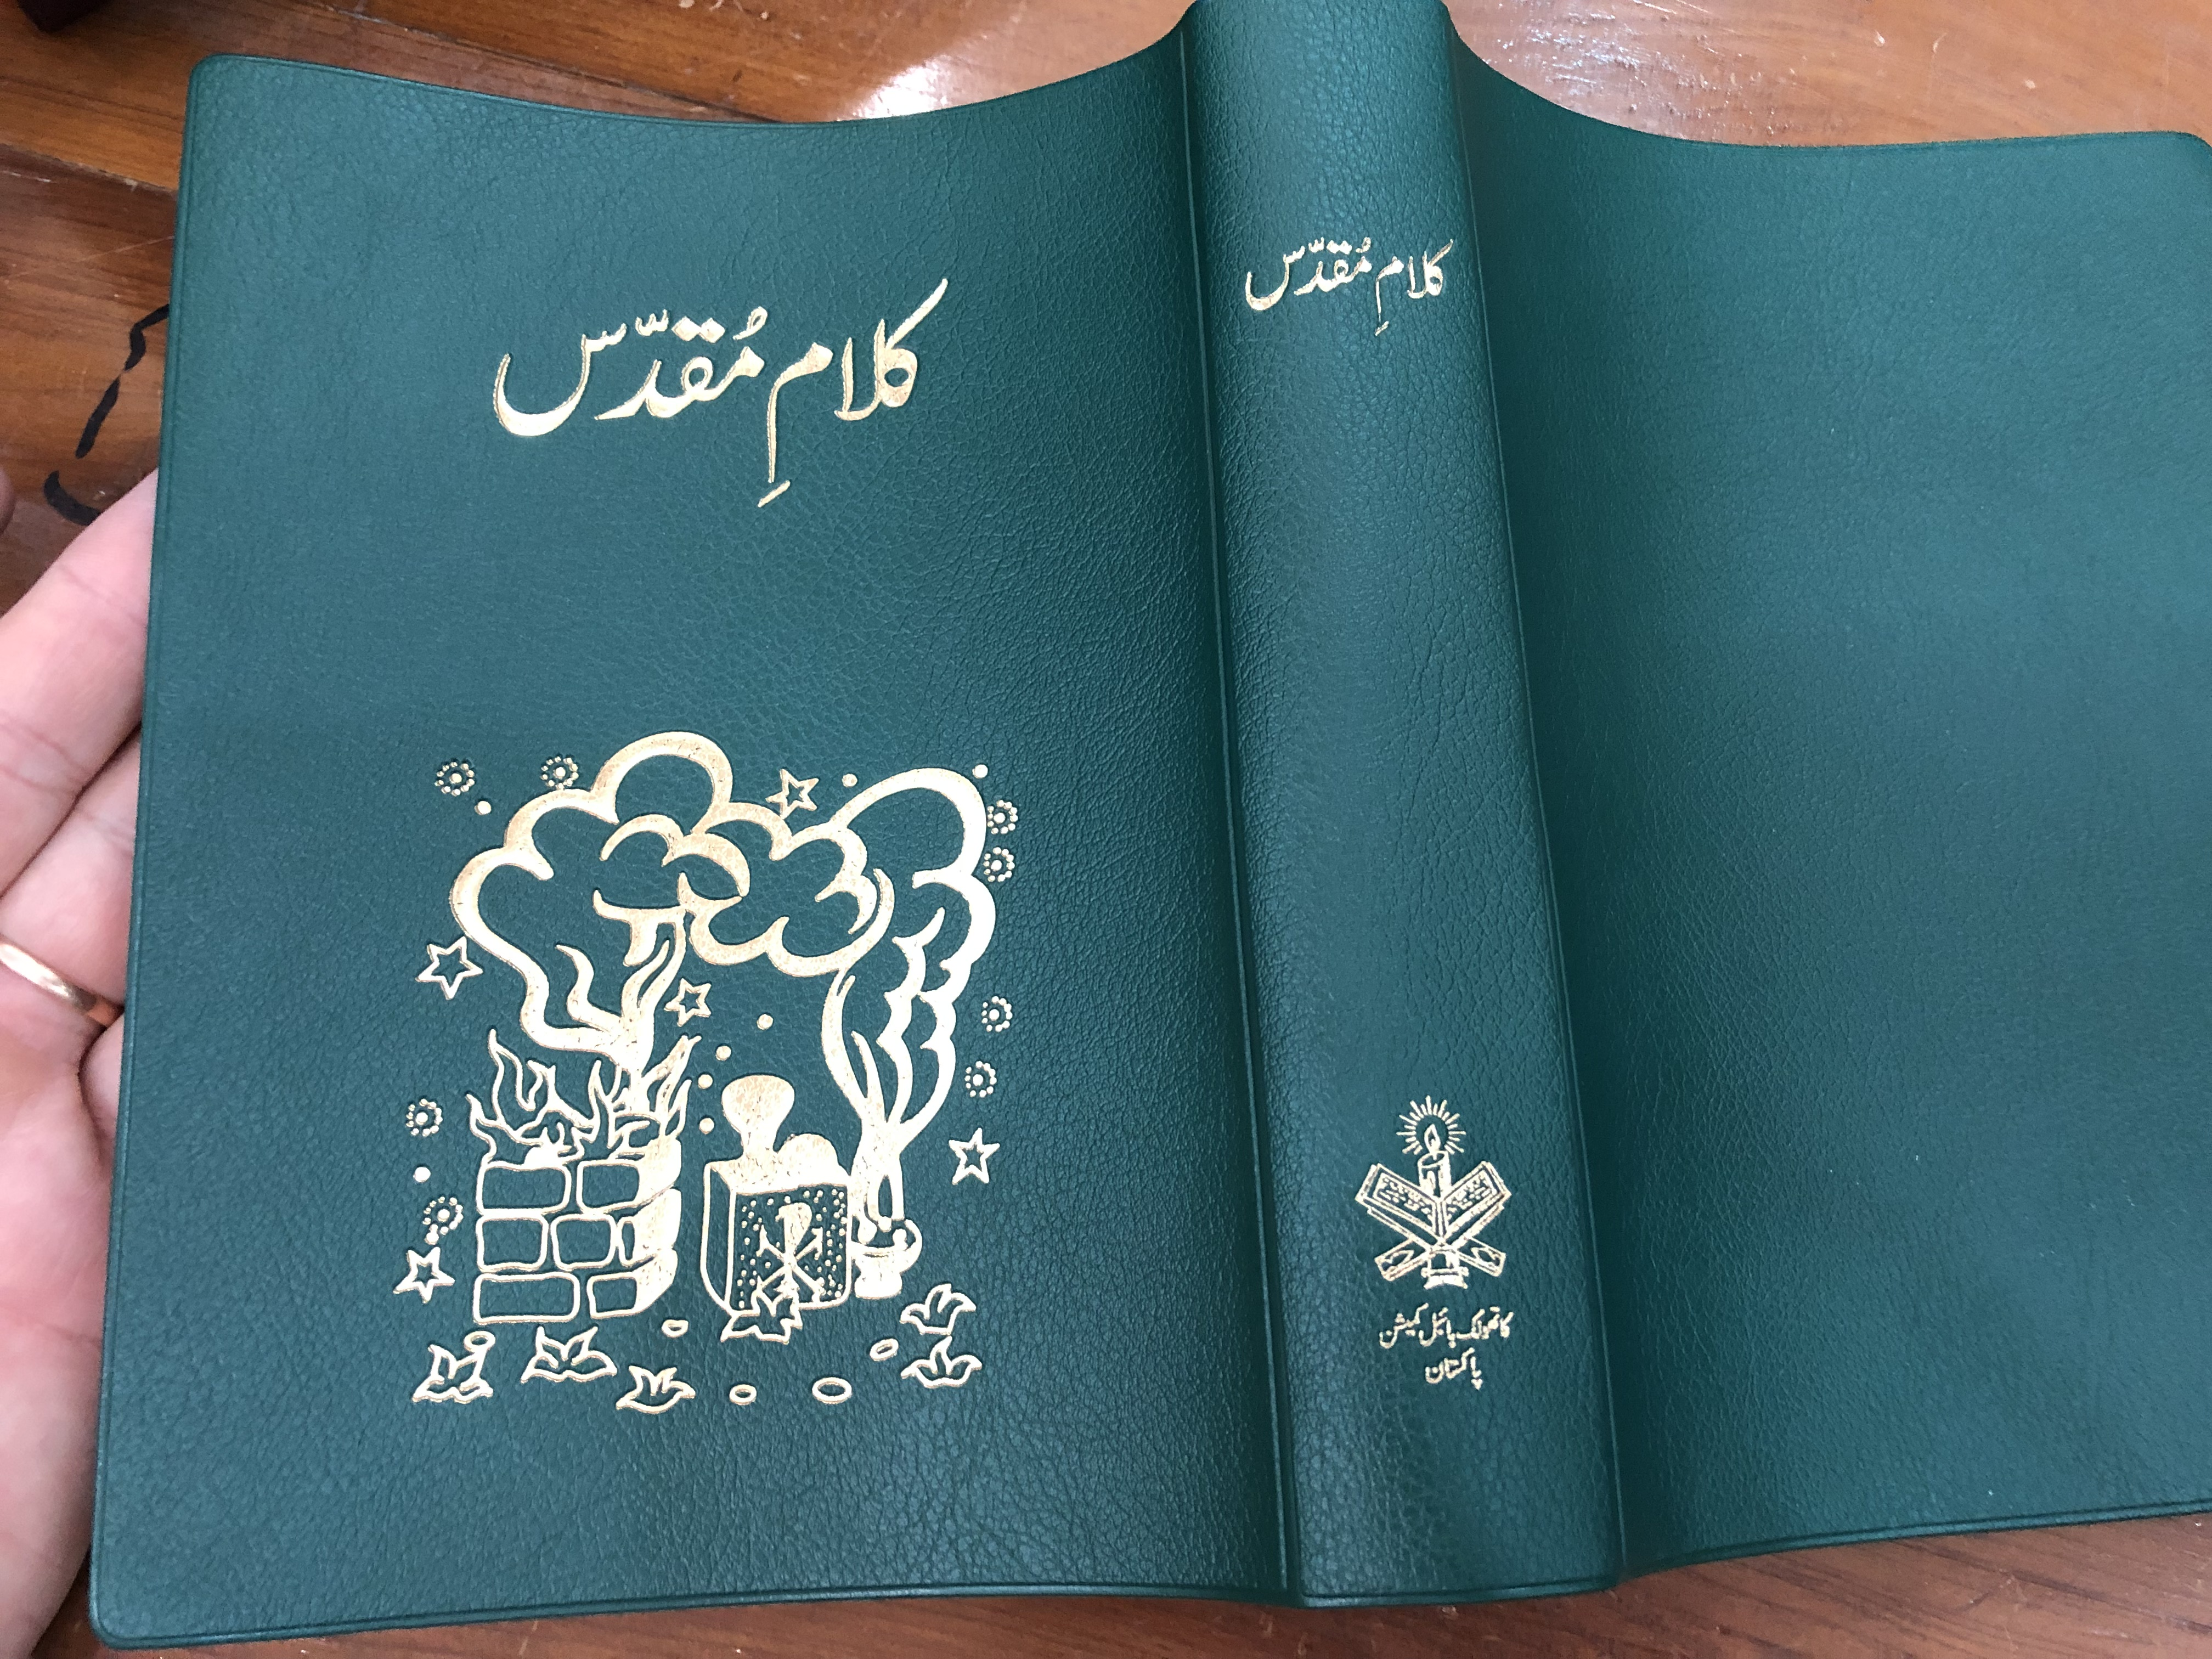 urdu-catholic-bible-green-vinyl-bound-catholic-bible-commission-pakistan-2007-kalam-e-muqaddas-with-color-maps-2-.jpg